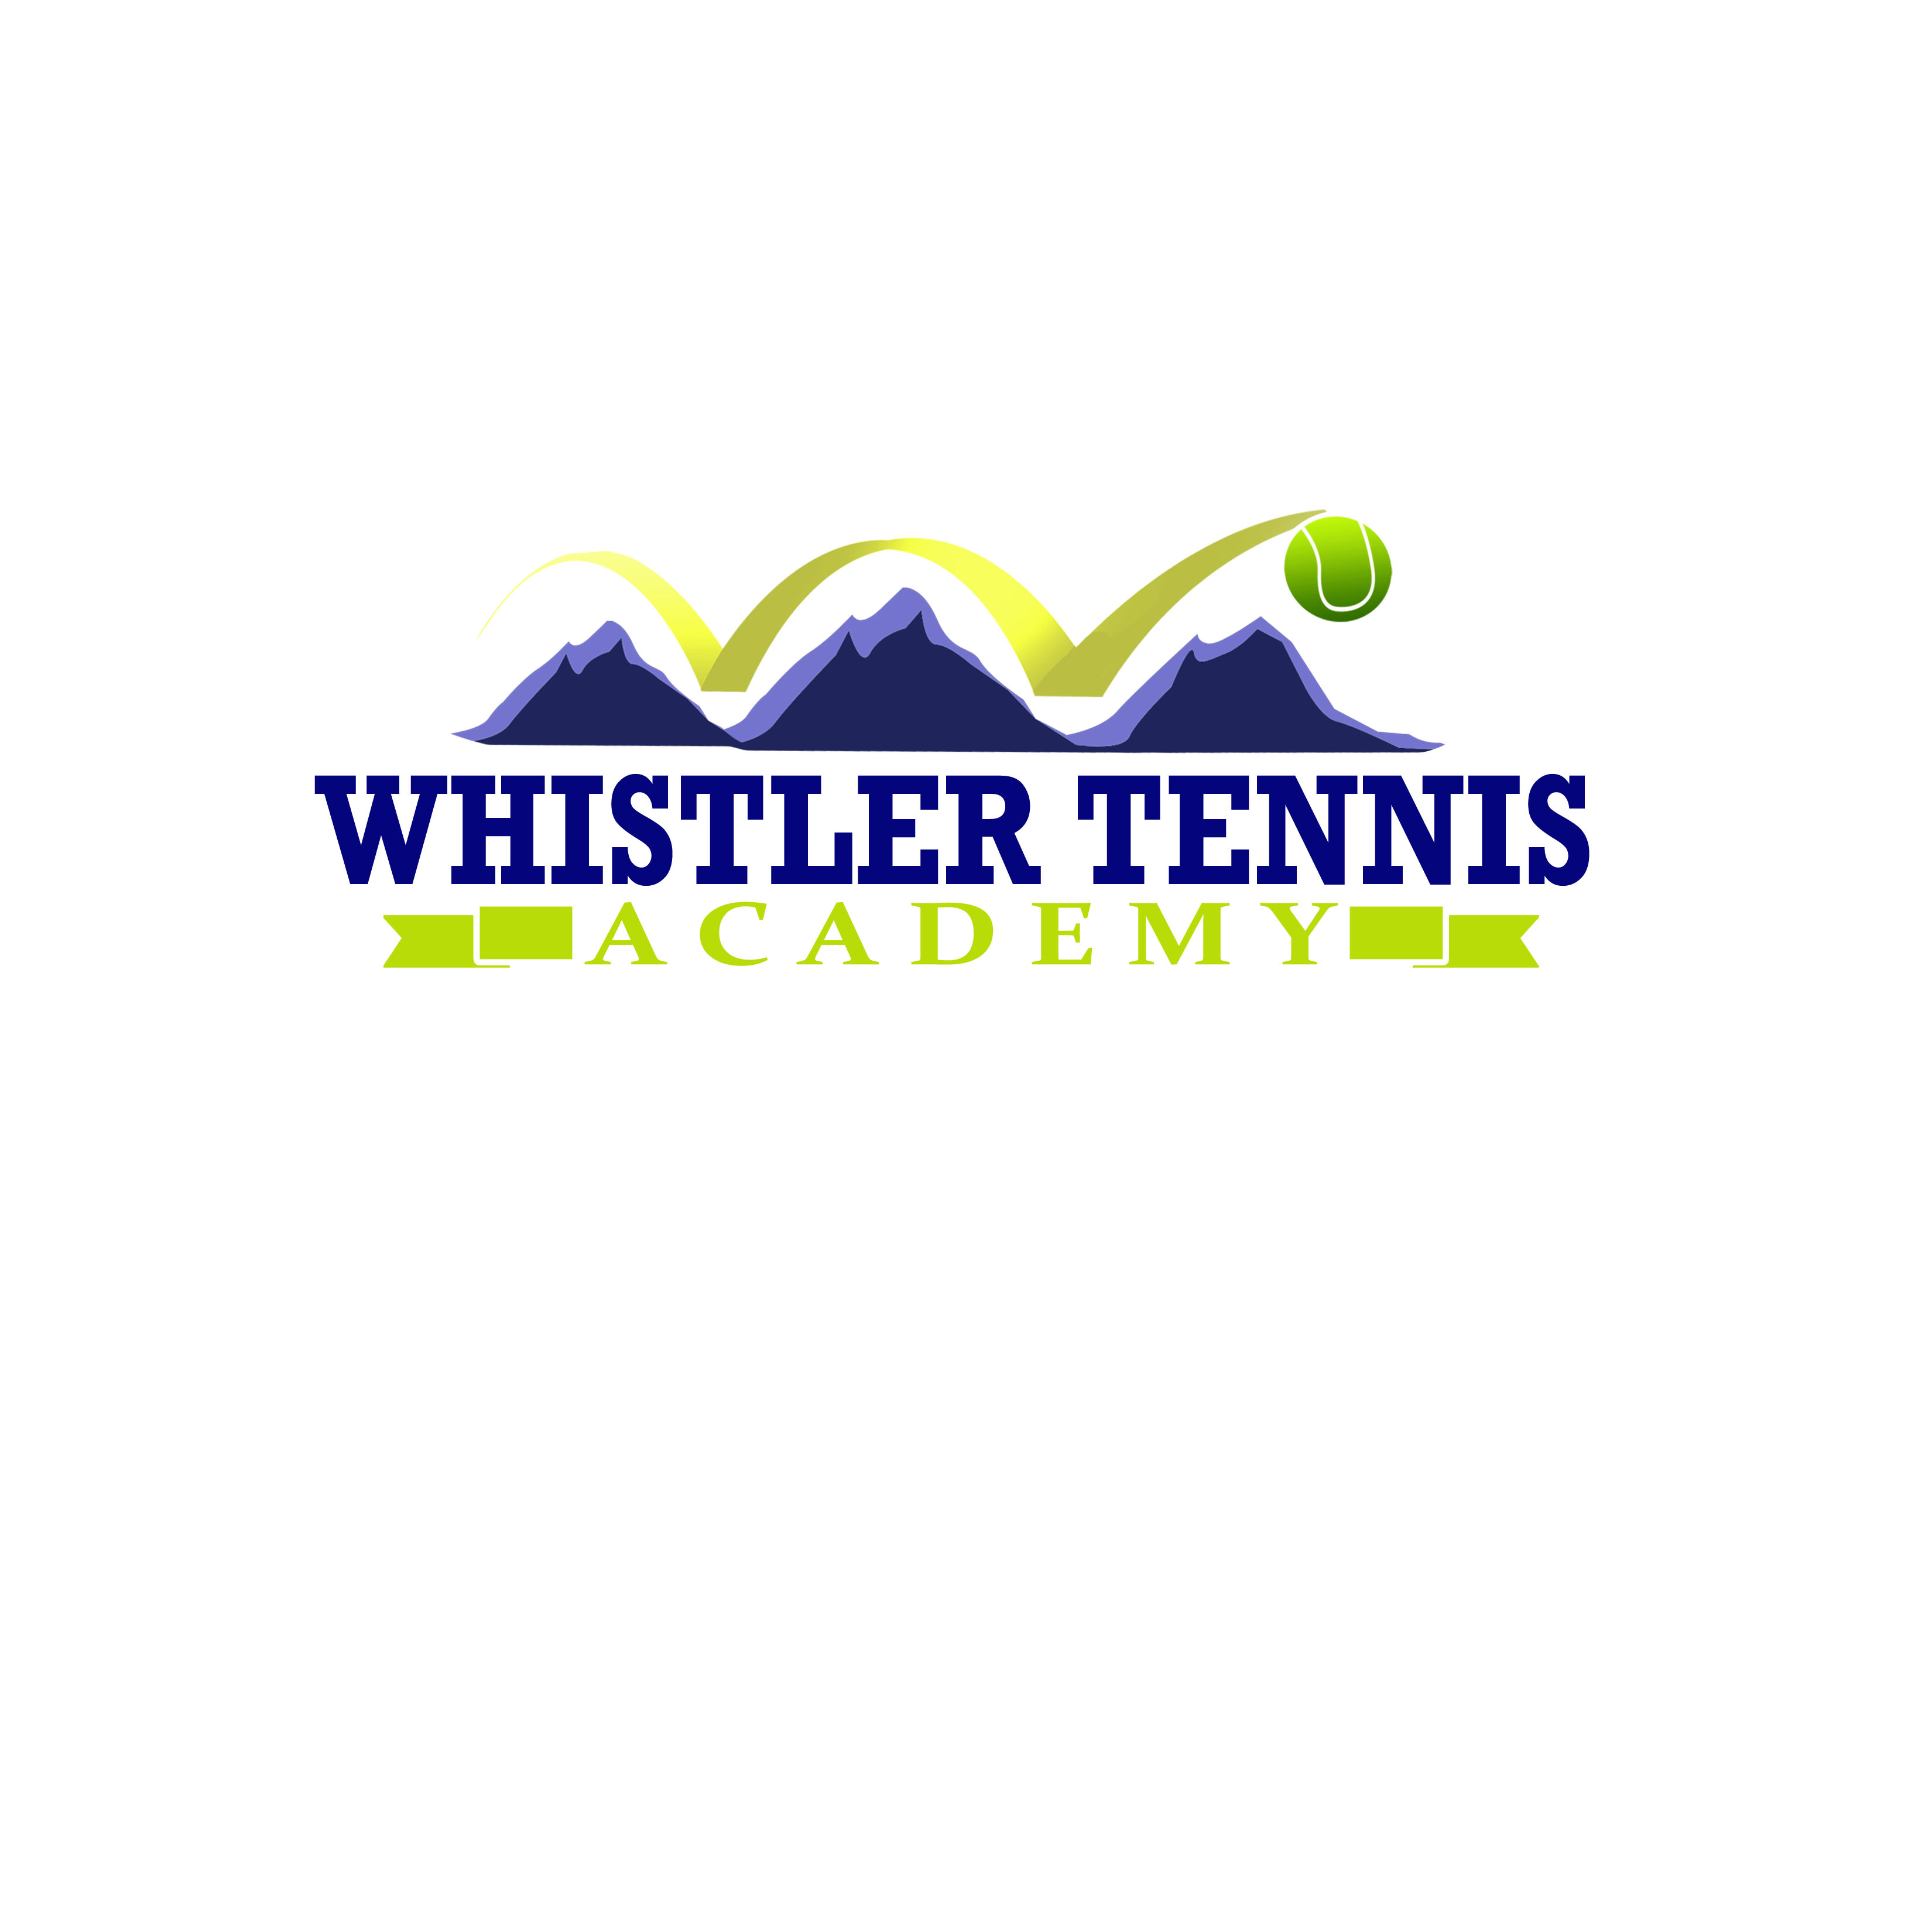 Logo Design by Allan Esclamado - Entry No. 180 in the Logo Design Contest Imaginative Logo Design for Whistler Tennis Academy.